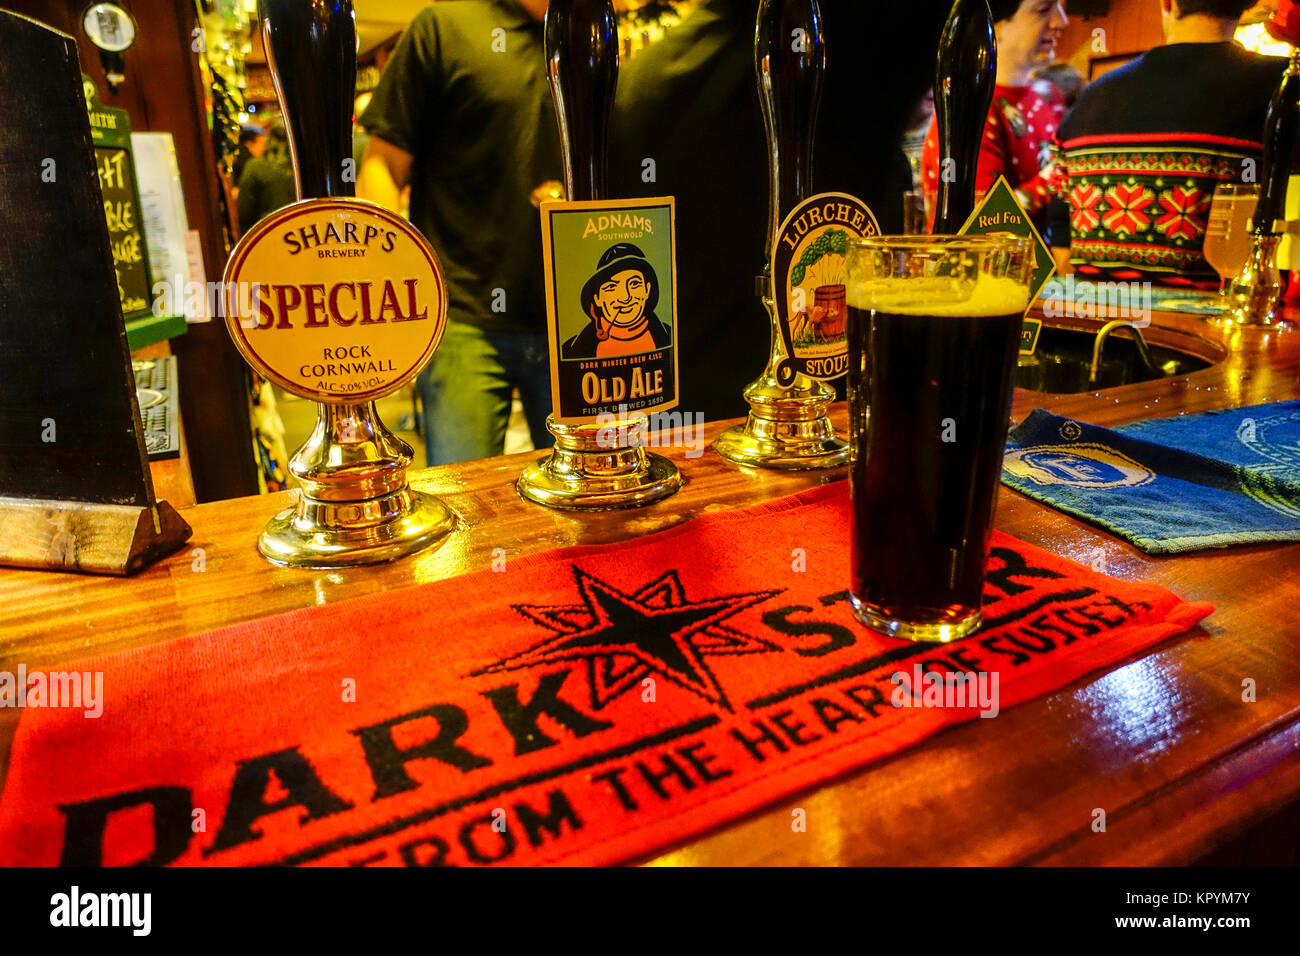 beer-pumps-a-glass-of-stout-at-the-railw